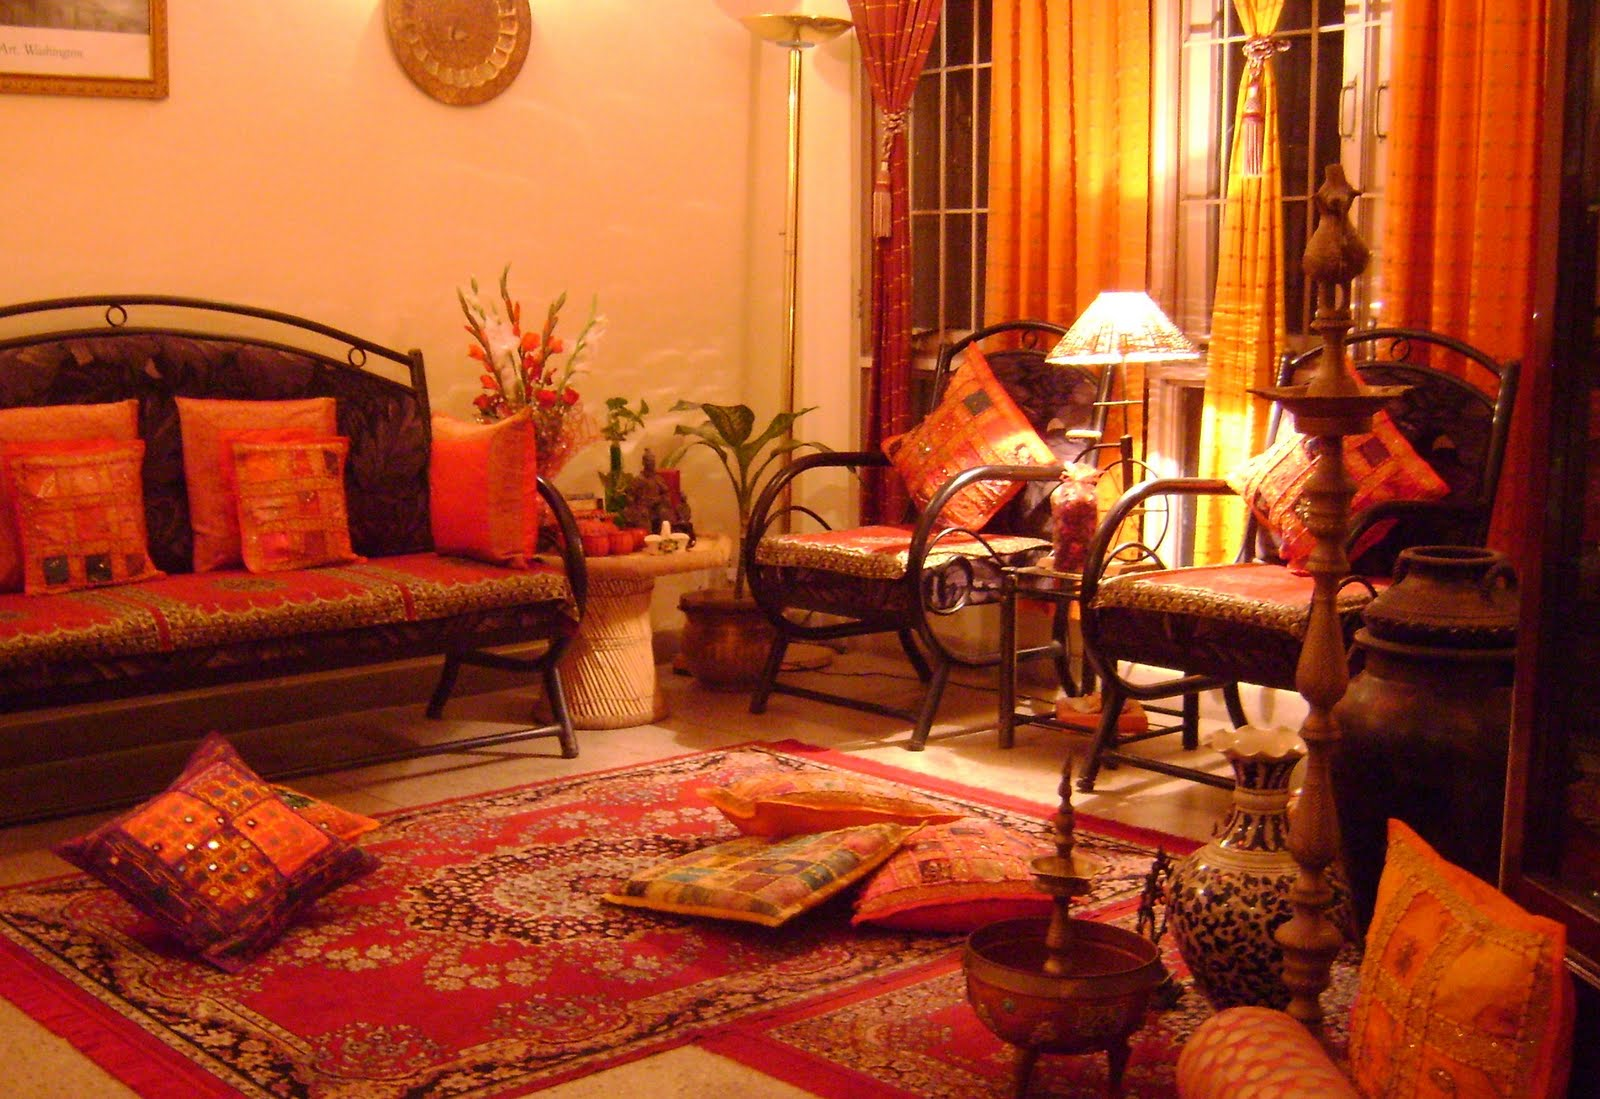 Hot On Instagram Indian Home Decor Ideas To Bring To The West